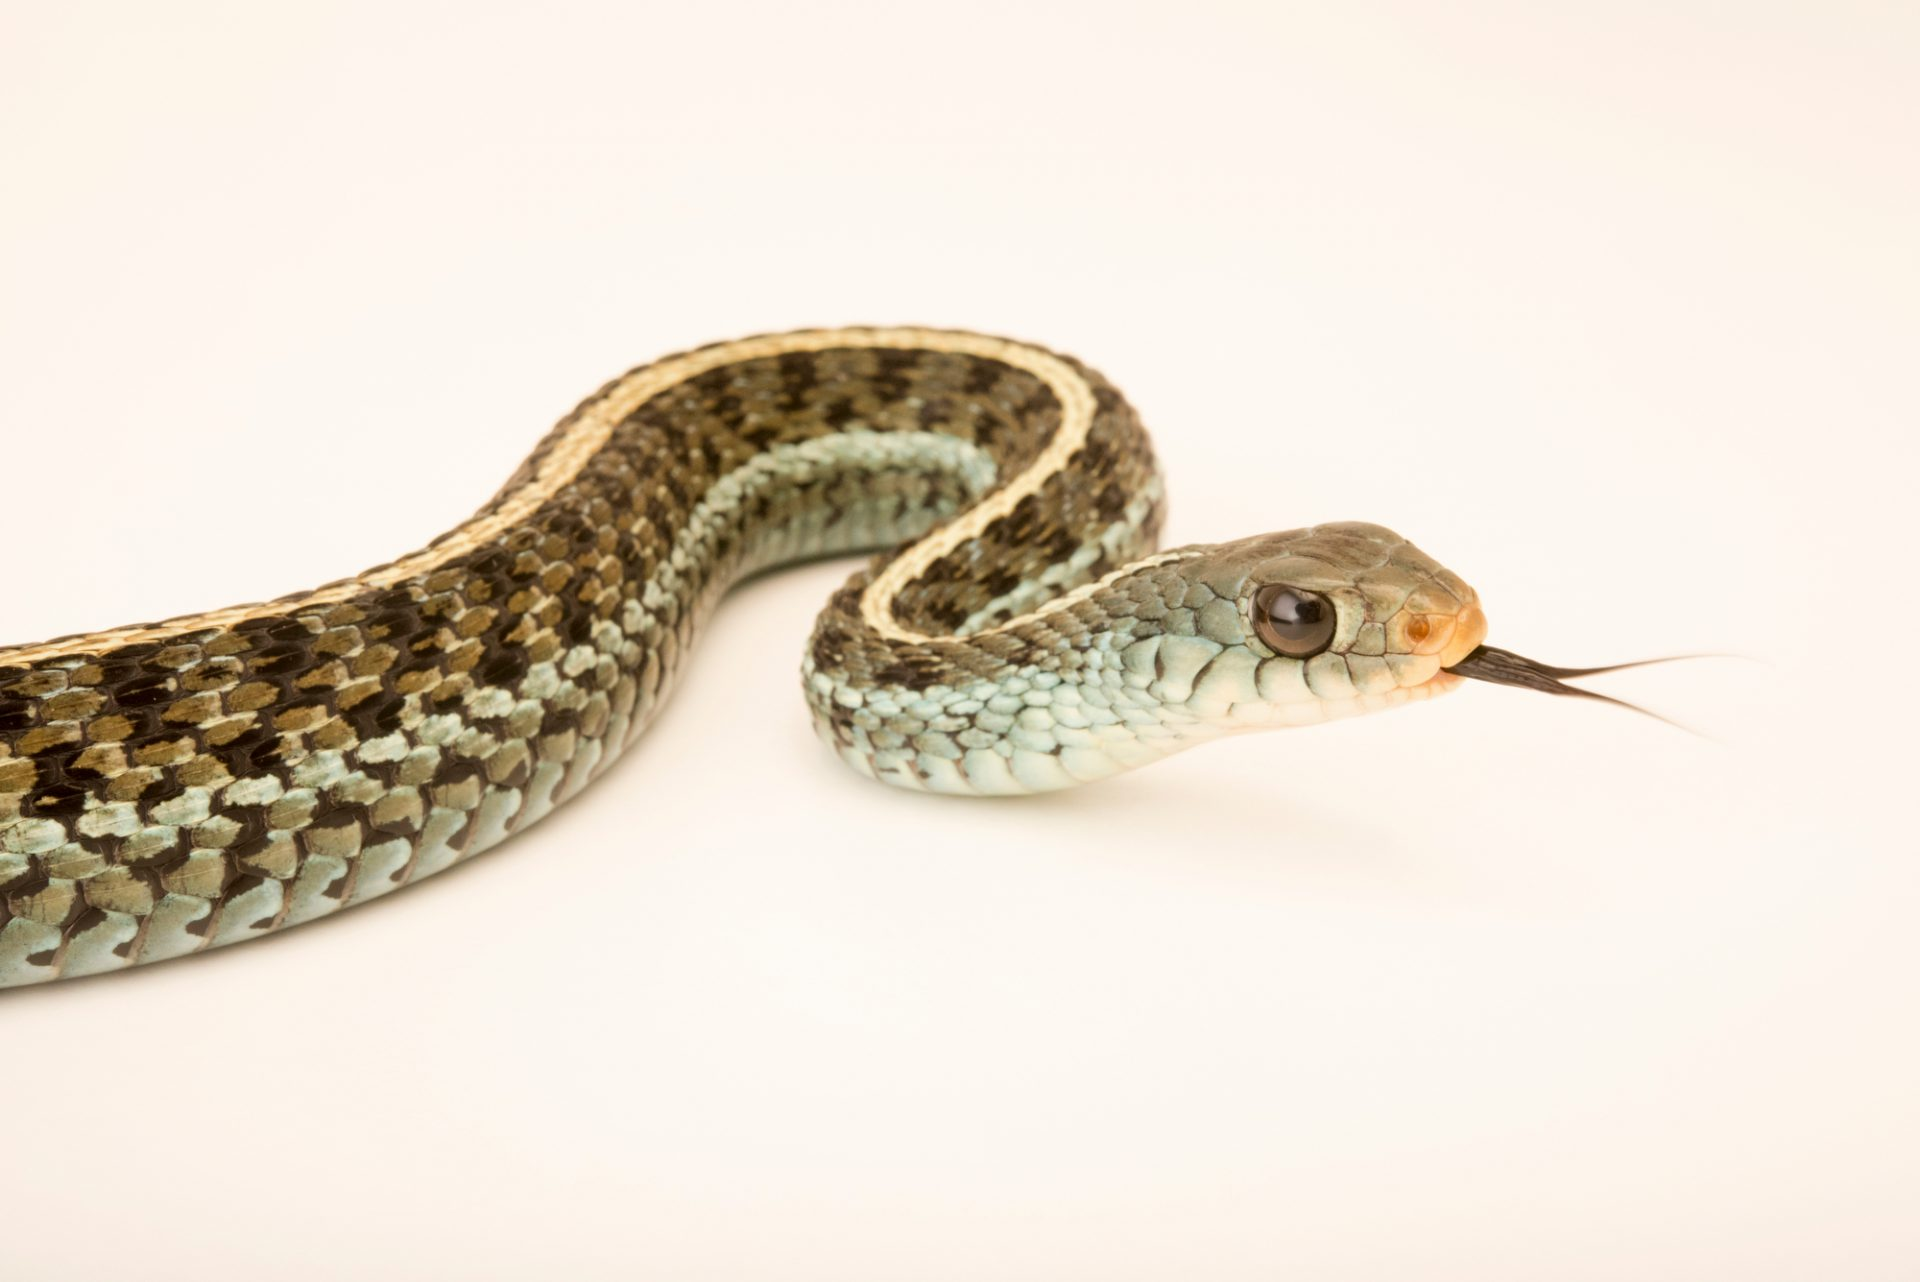 Photo: Eastern garter snake (Thamnophis sirtalis sirtalis) at the Exmoor Zoo.